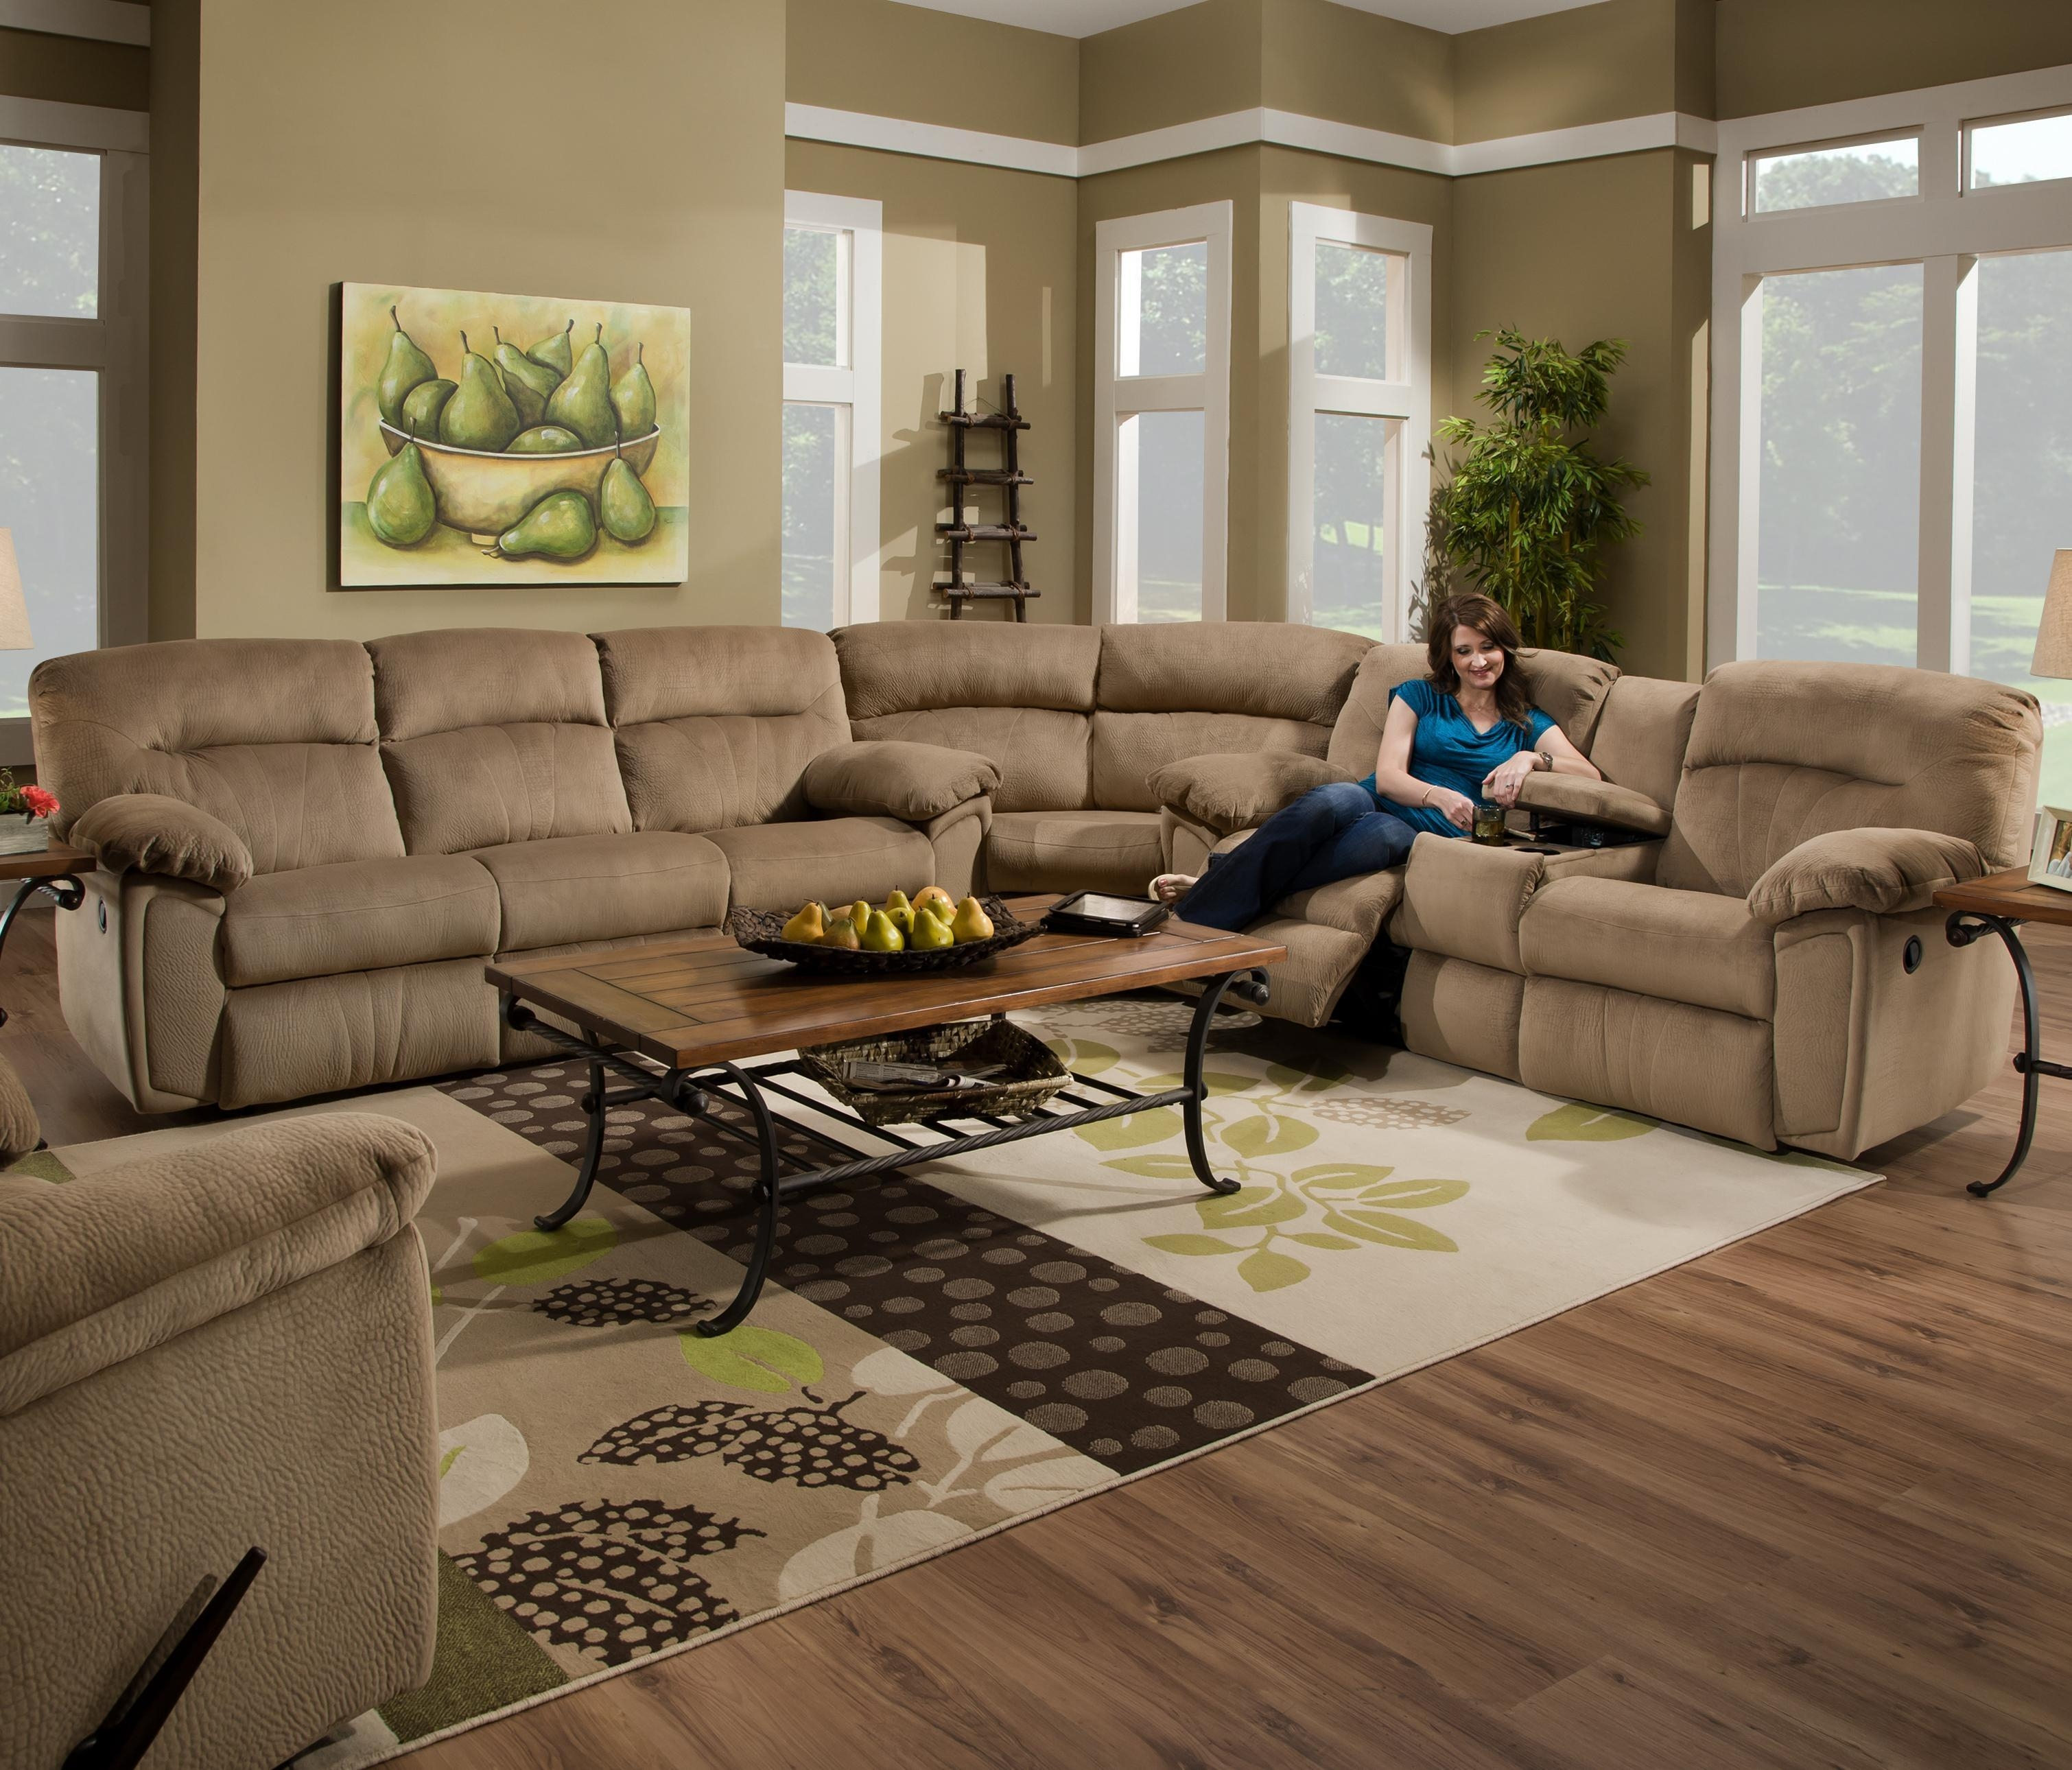 Furniture: Flex Steel Couch | Broyhill Recliner Sofas | Broyhill Sofa With Regard To Broyhill Reclining Sofas (View 13 of 20)